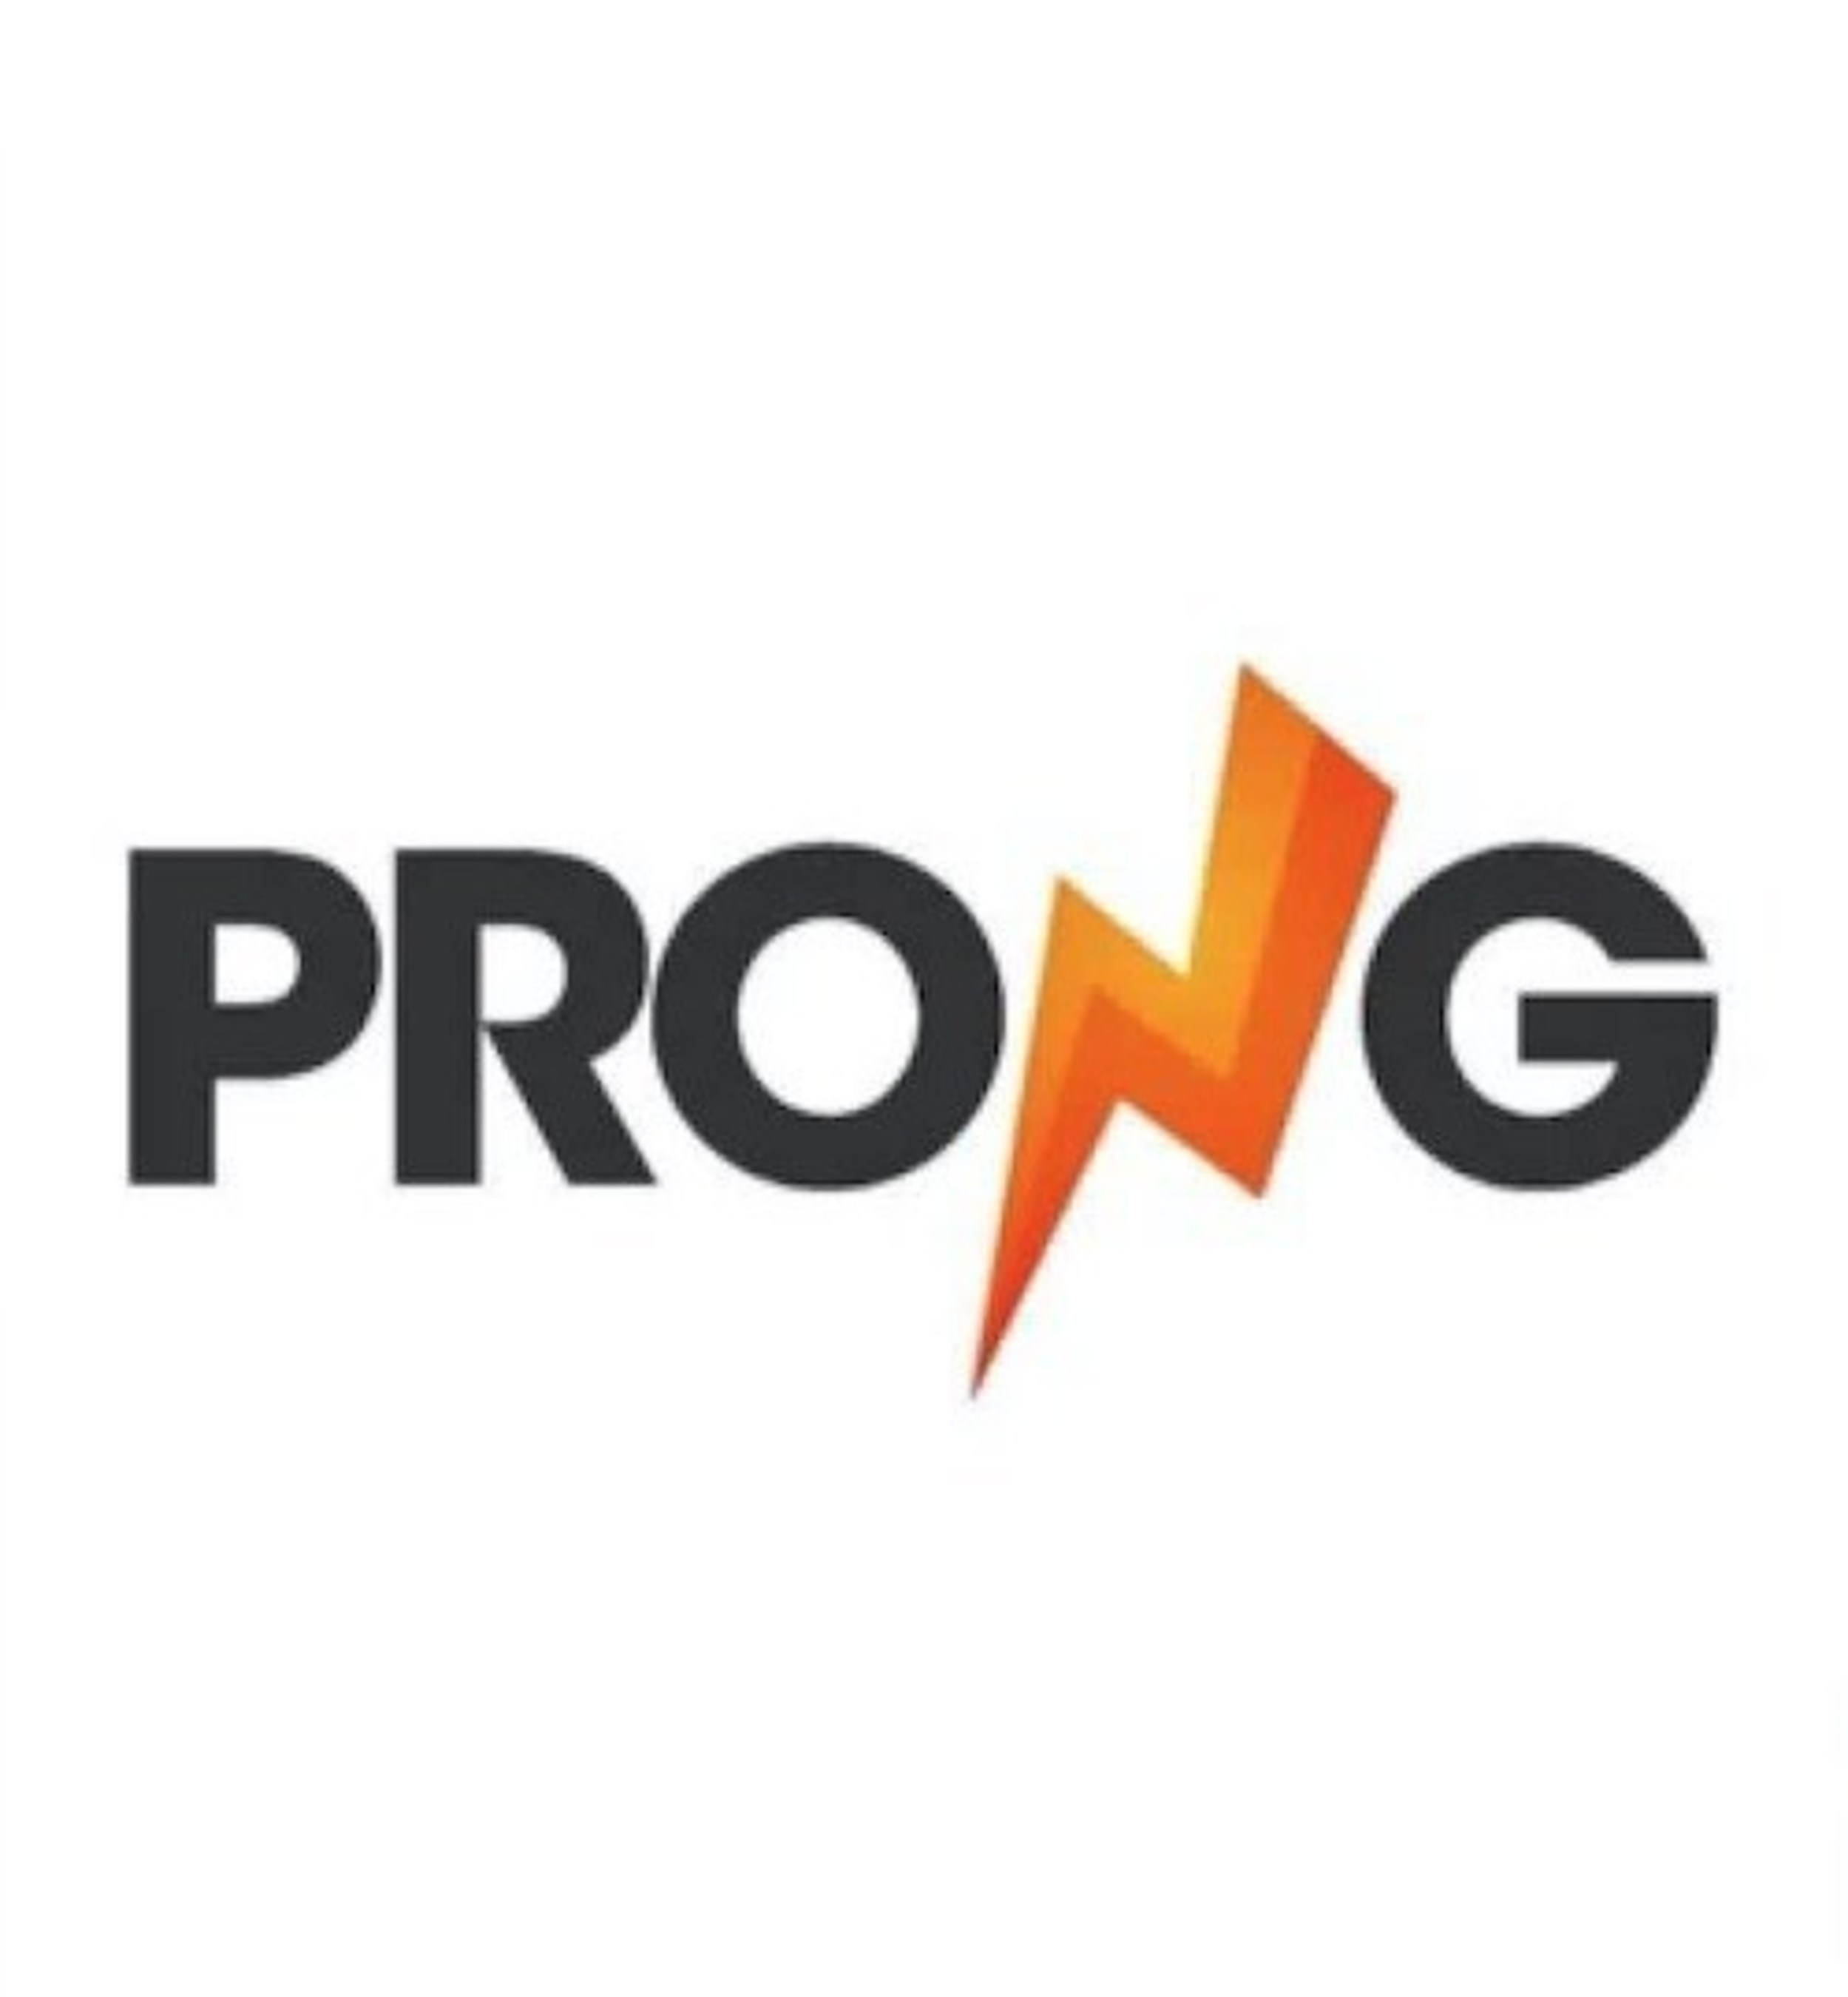 Prong Profiles the OpenBay Connect: An iPhone App for Fast and Accurate Car Diagnostics